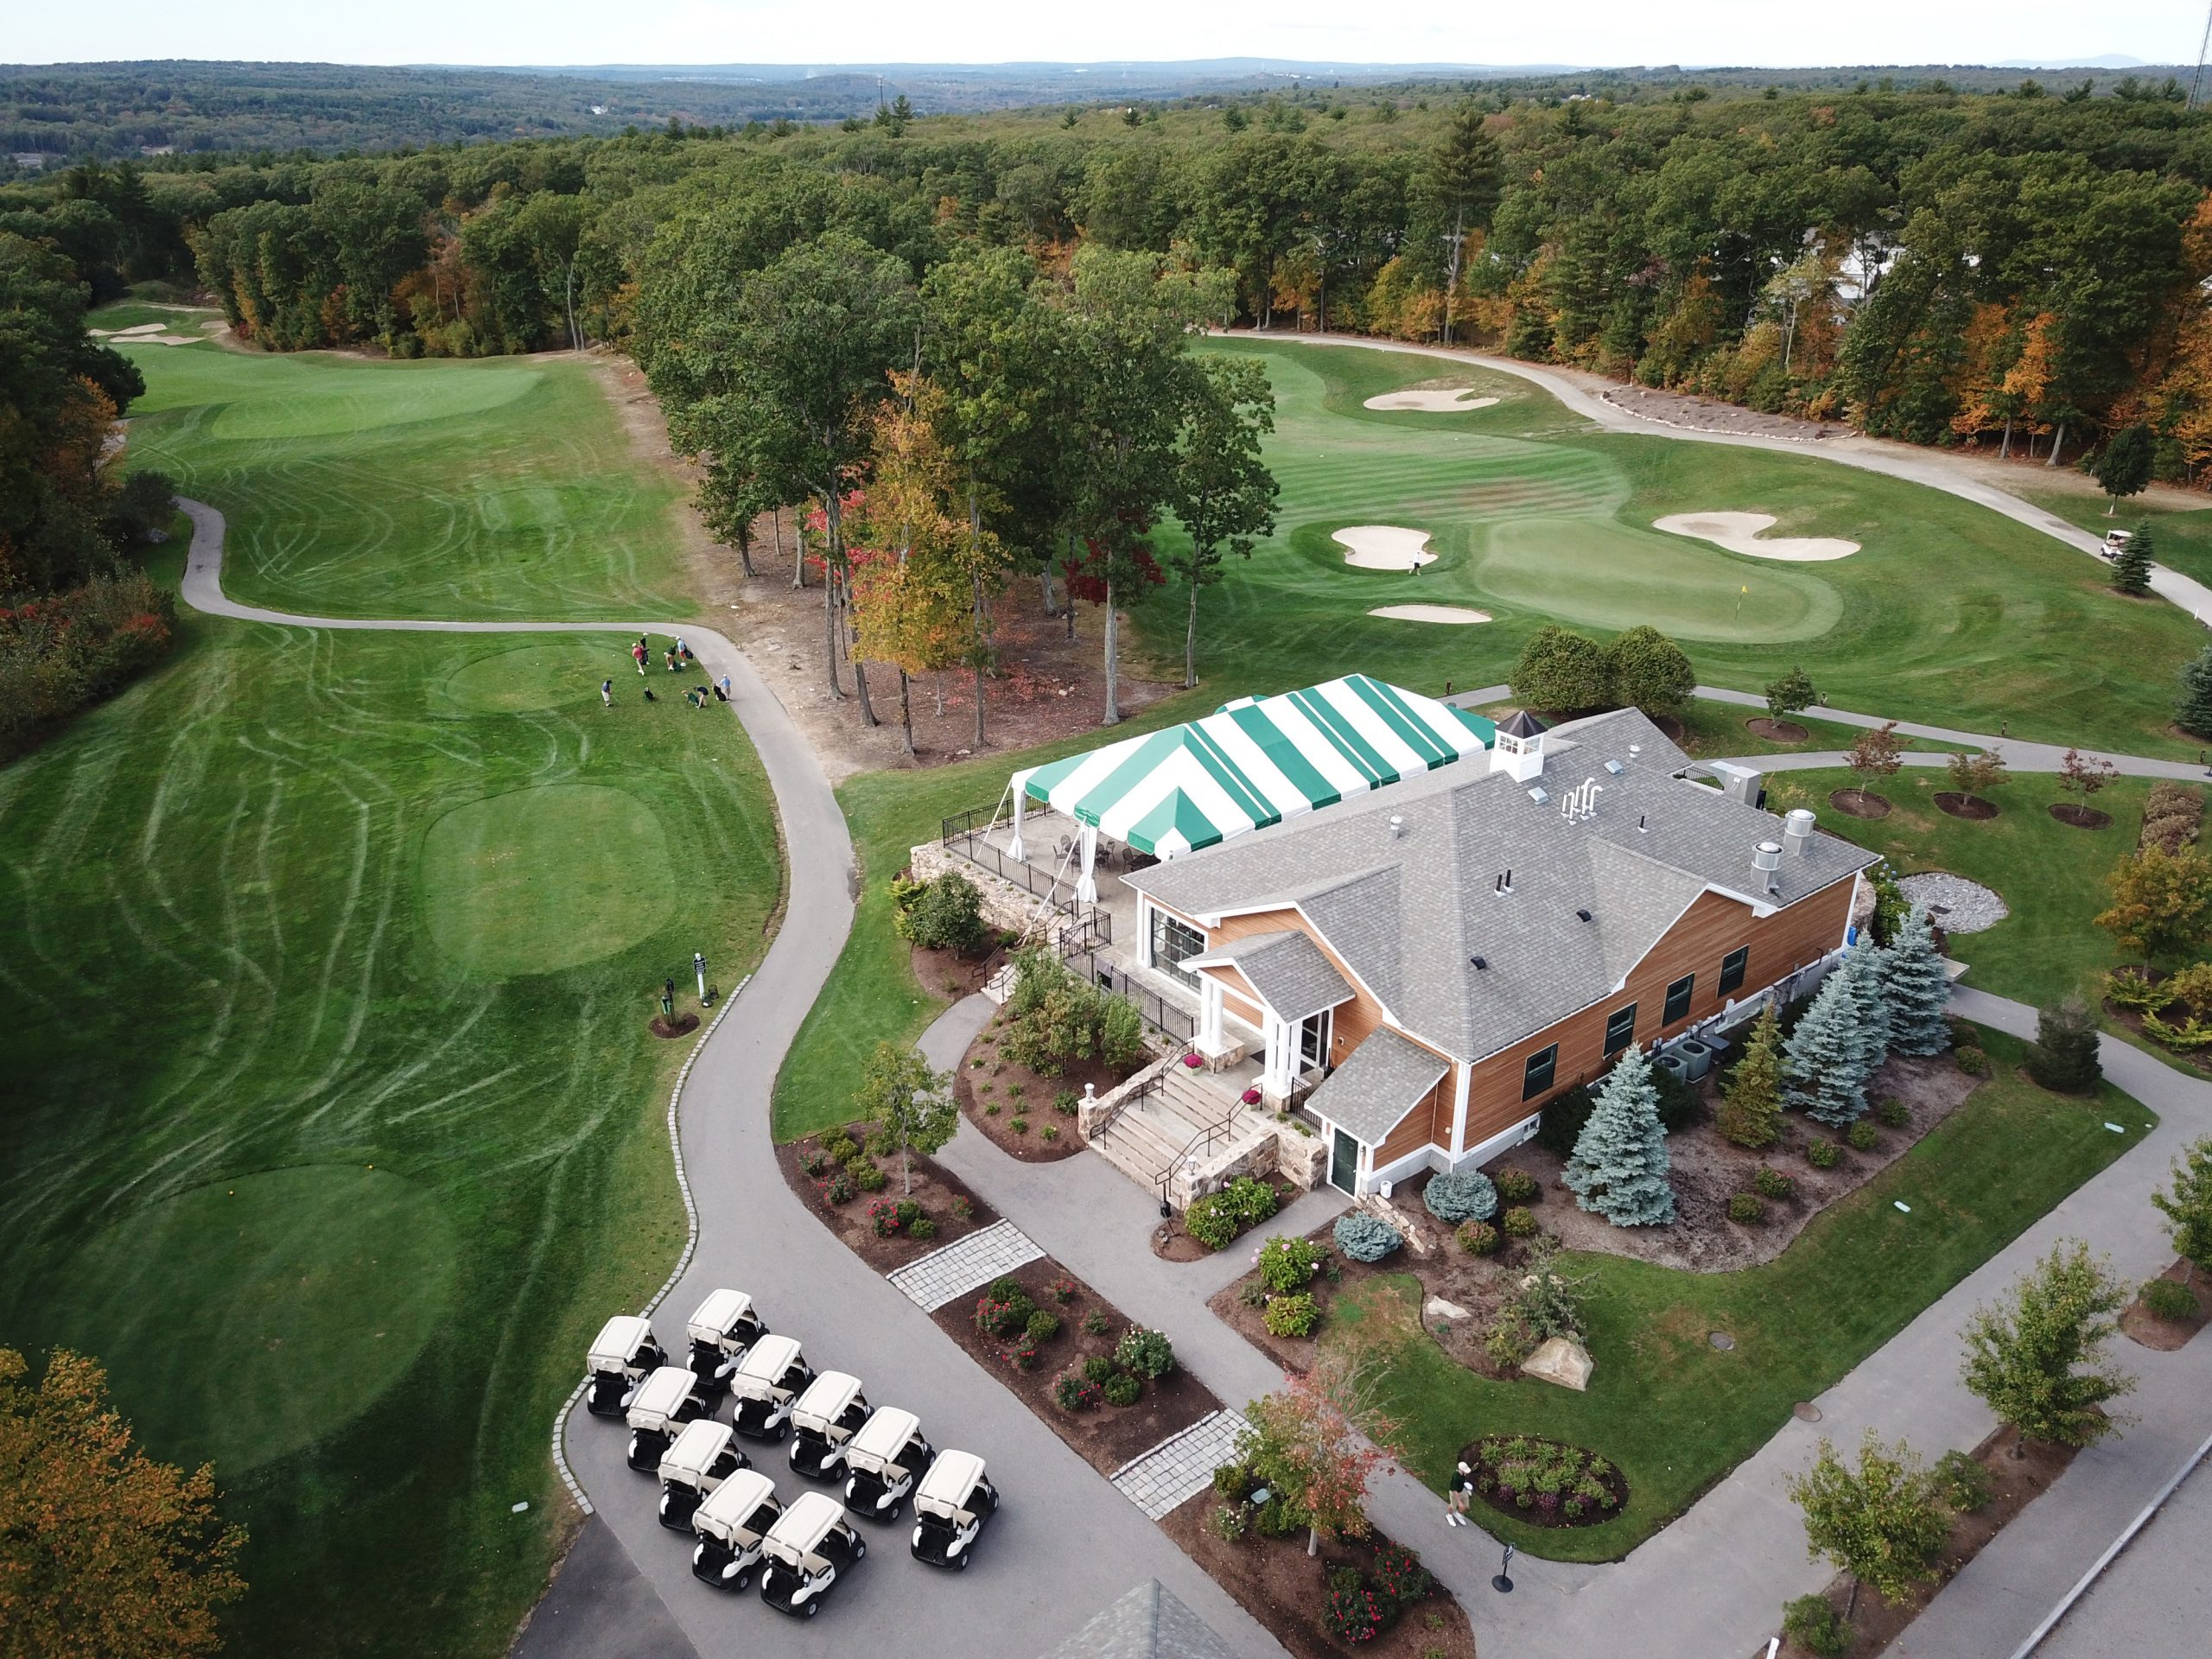 worcester area golf course club house